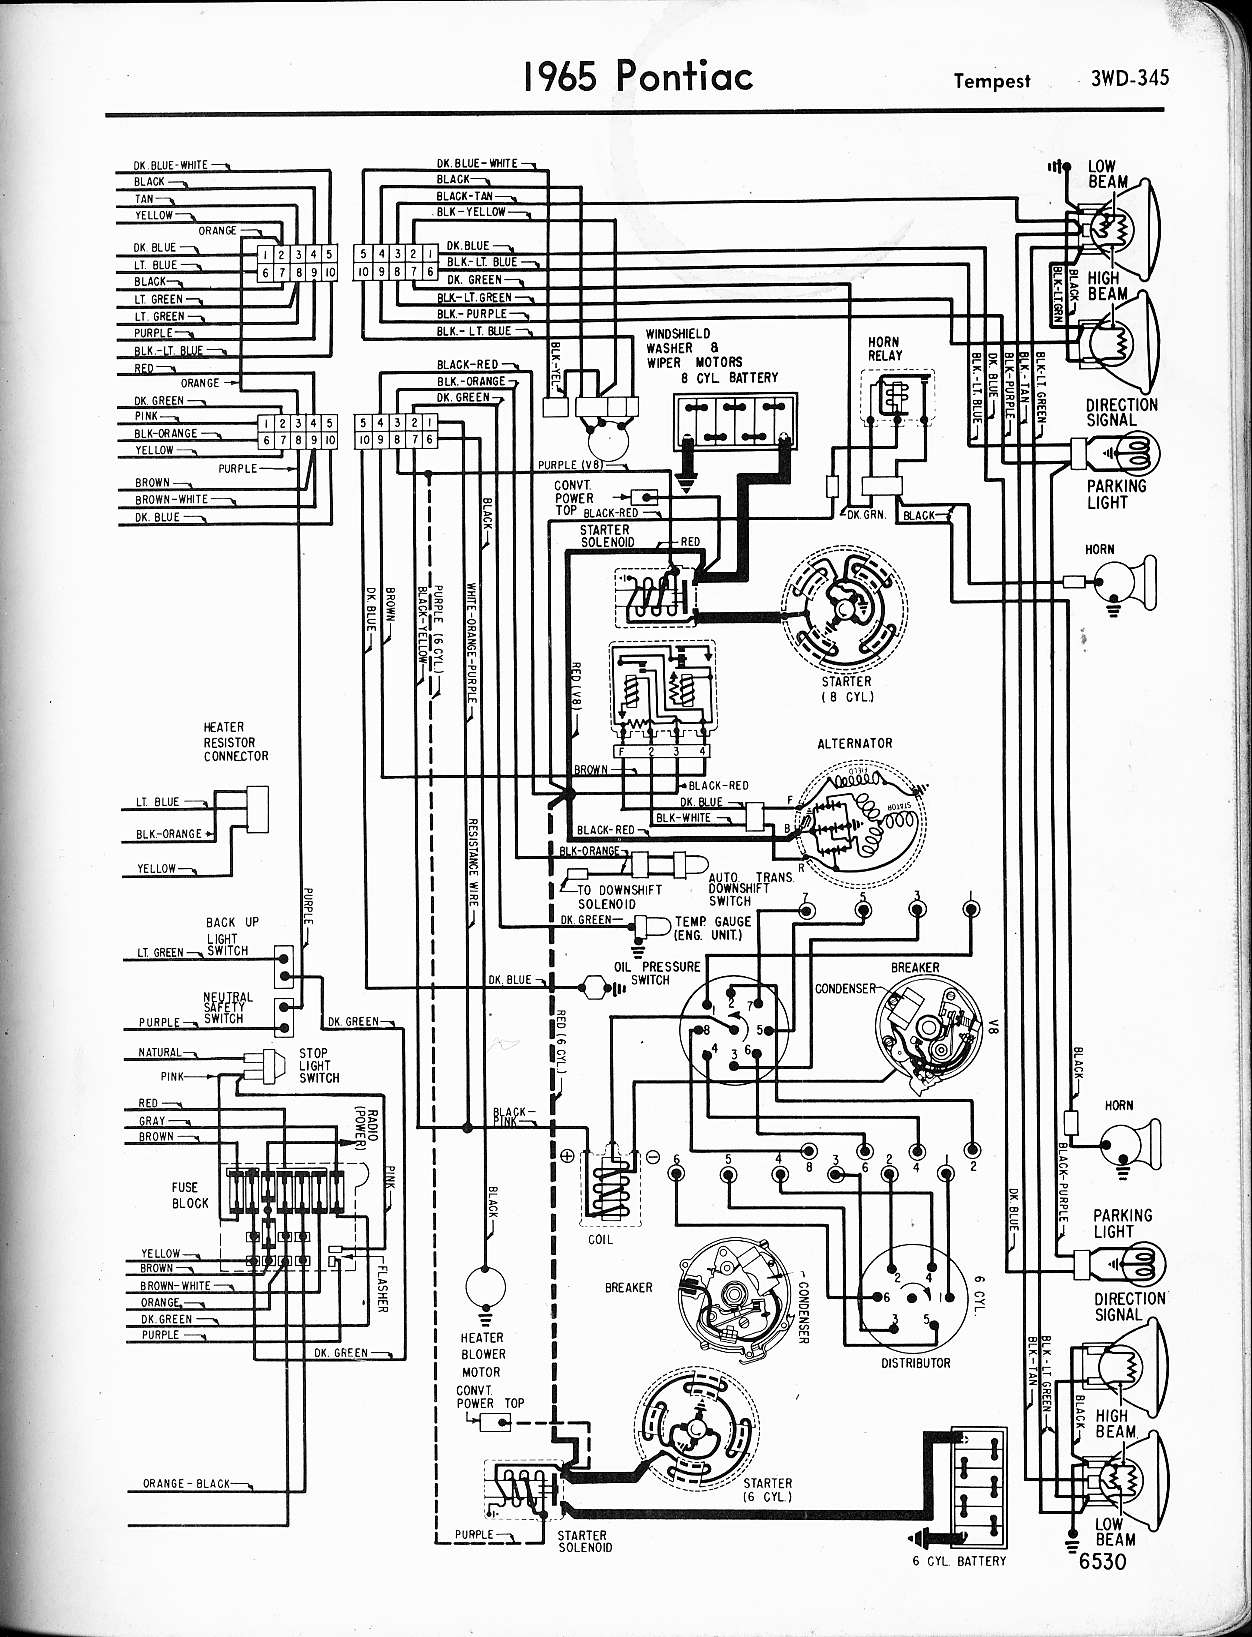 1965 pontiac gto rally gauge wiring diagram wiring diagram rh gregmadison co 1970 LeMans 1968 LeMans